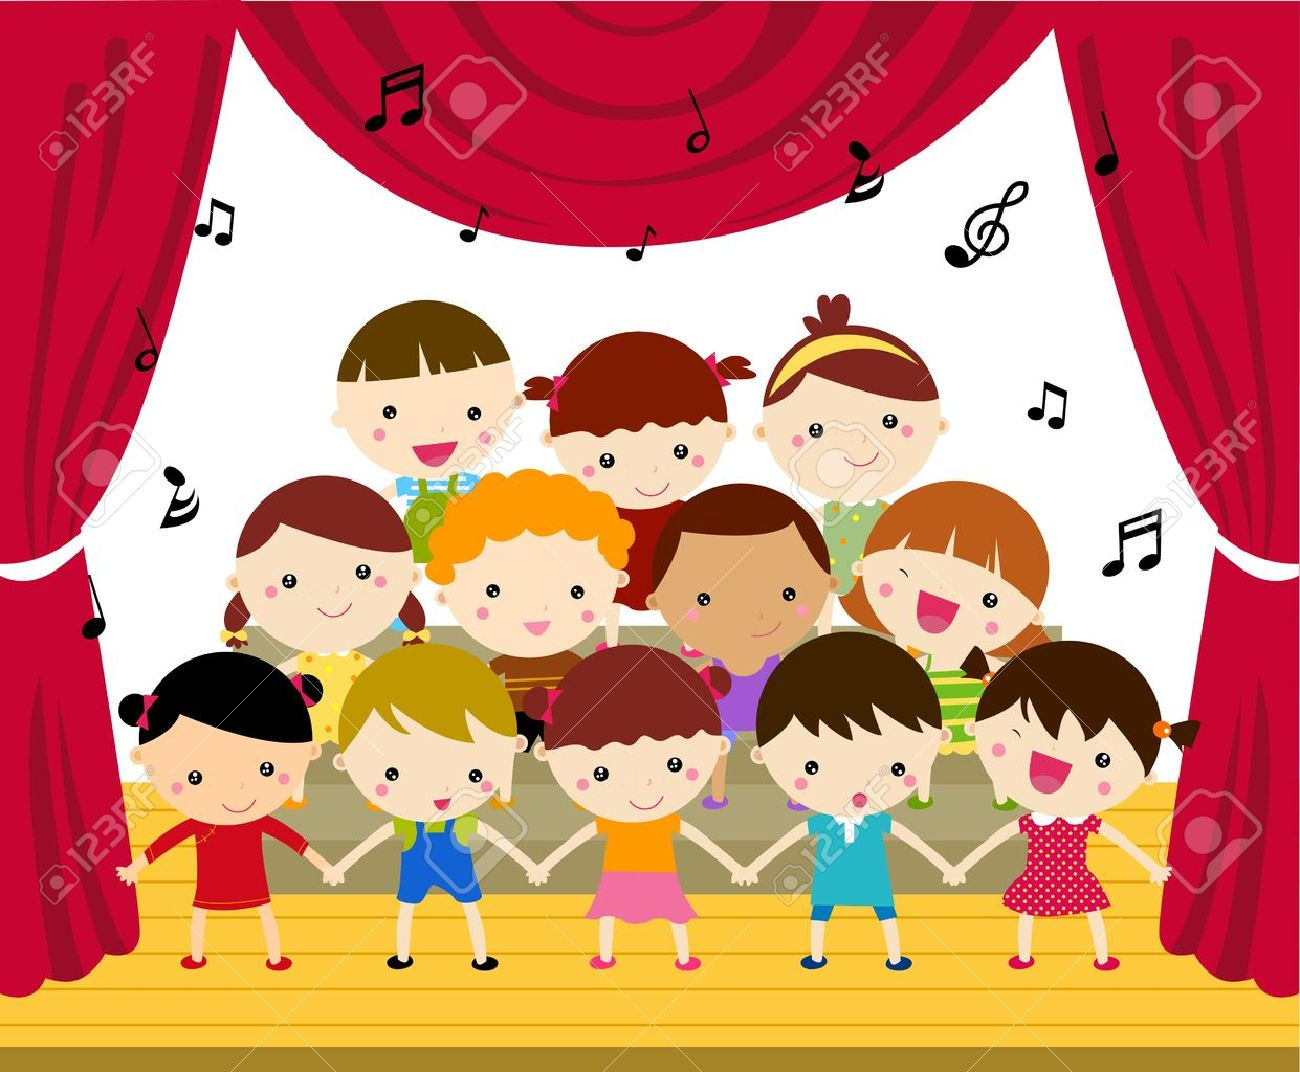 Children's Choir Performing On Stage Royalty Free Cliparts.